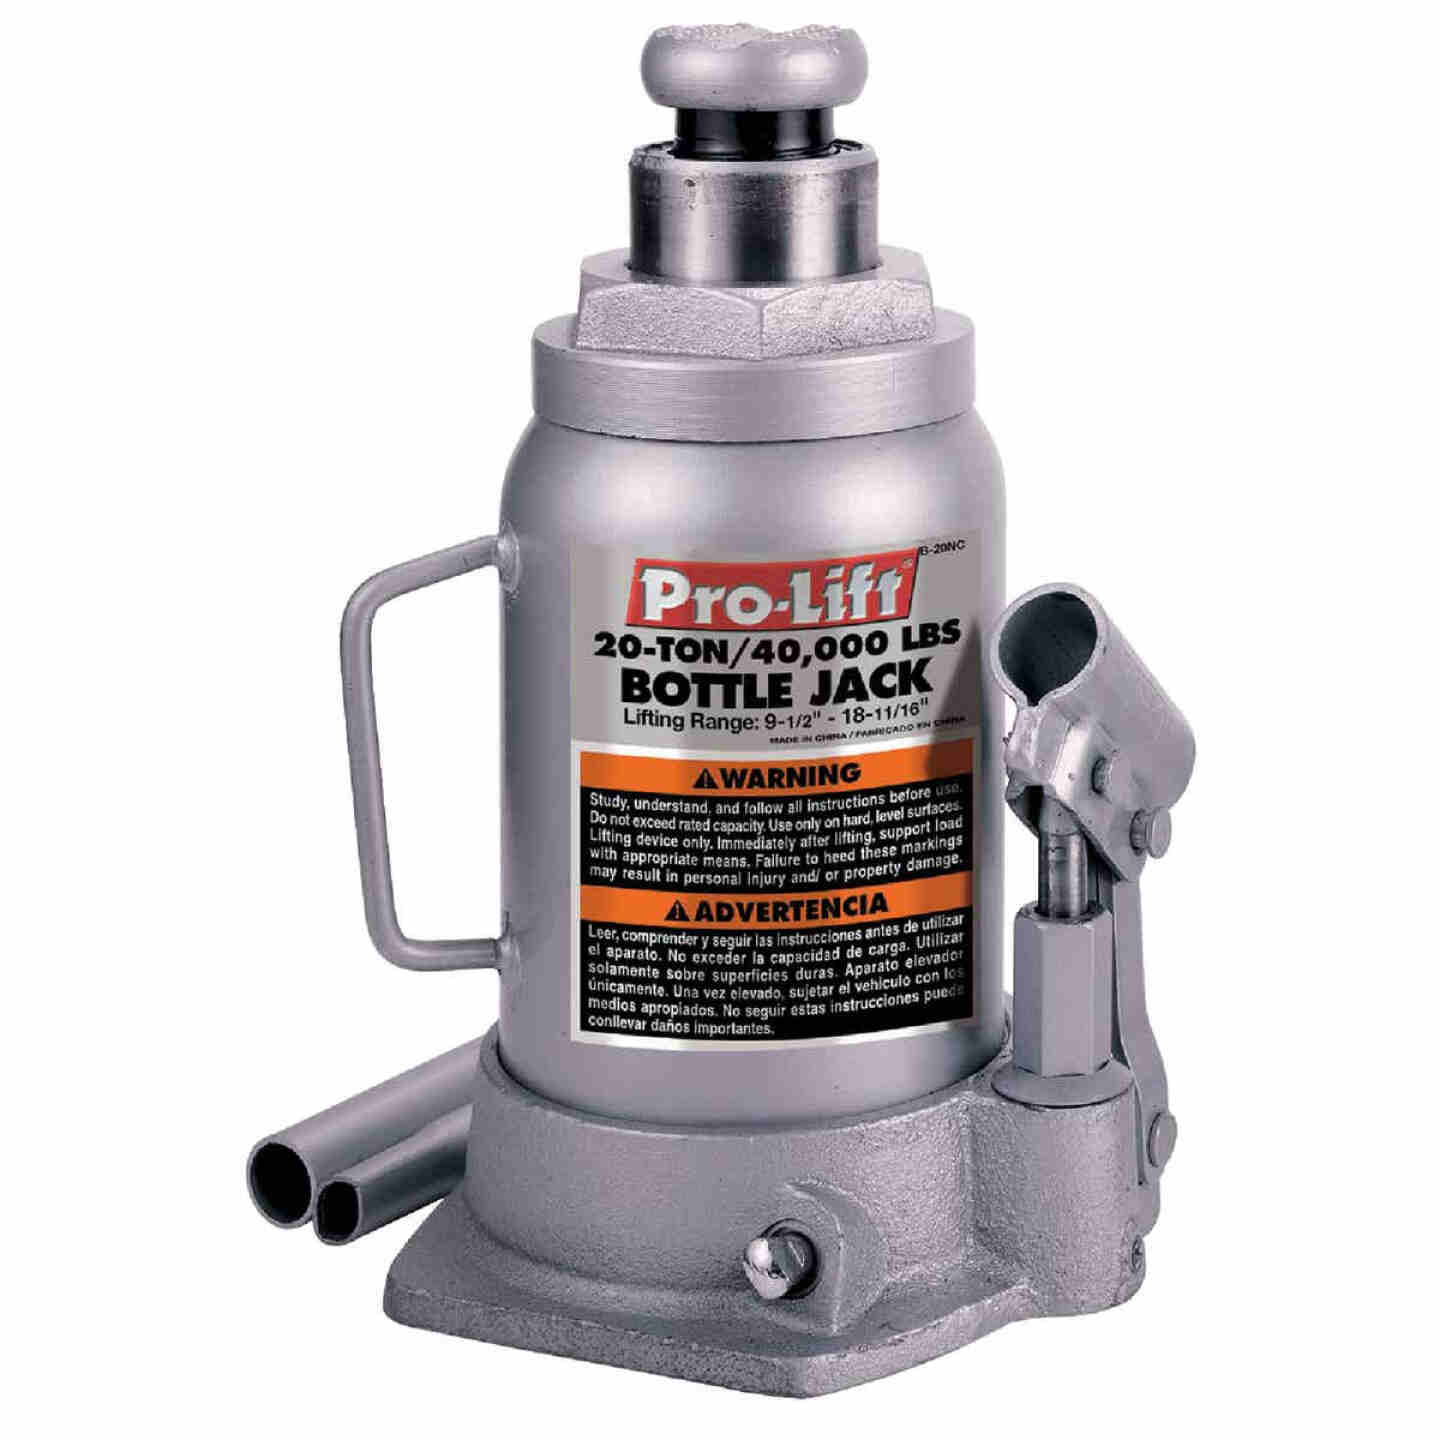 Pro-Lift 20-Ton Hydraulic Bottle Jack Image 1